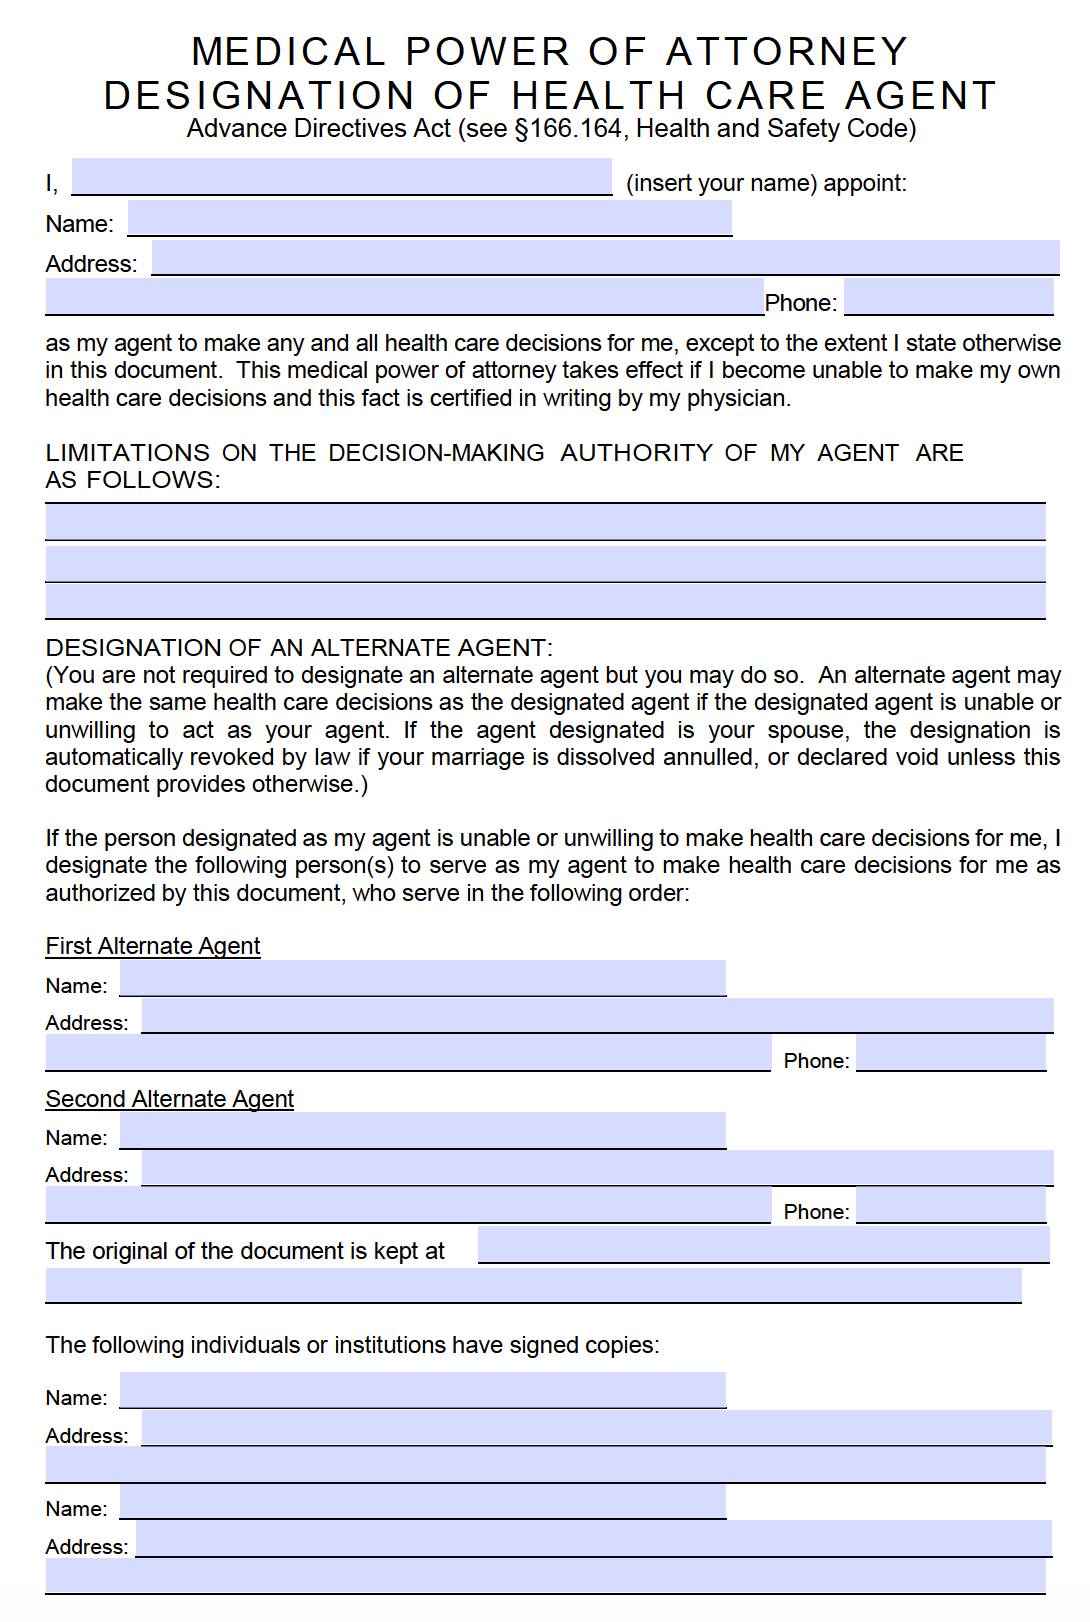 Free Medical Power of Attorney Texas Form – PDF